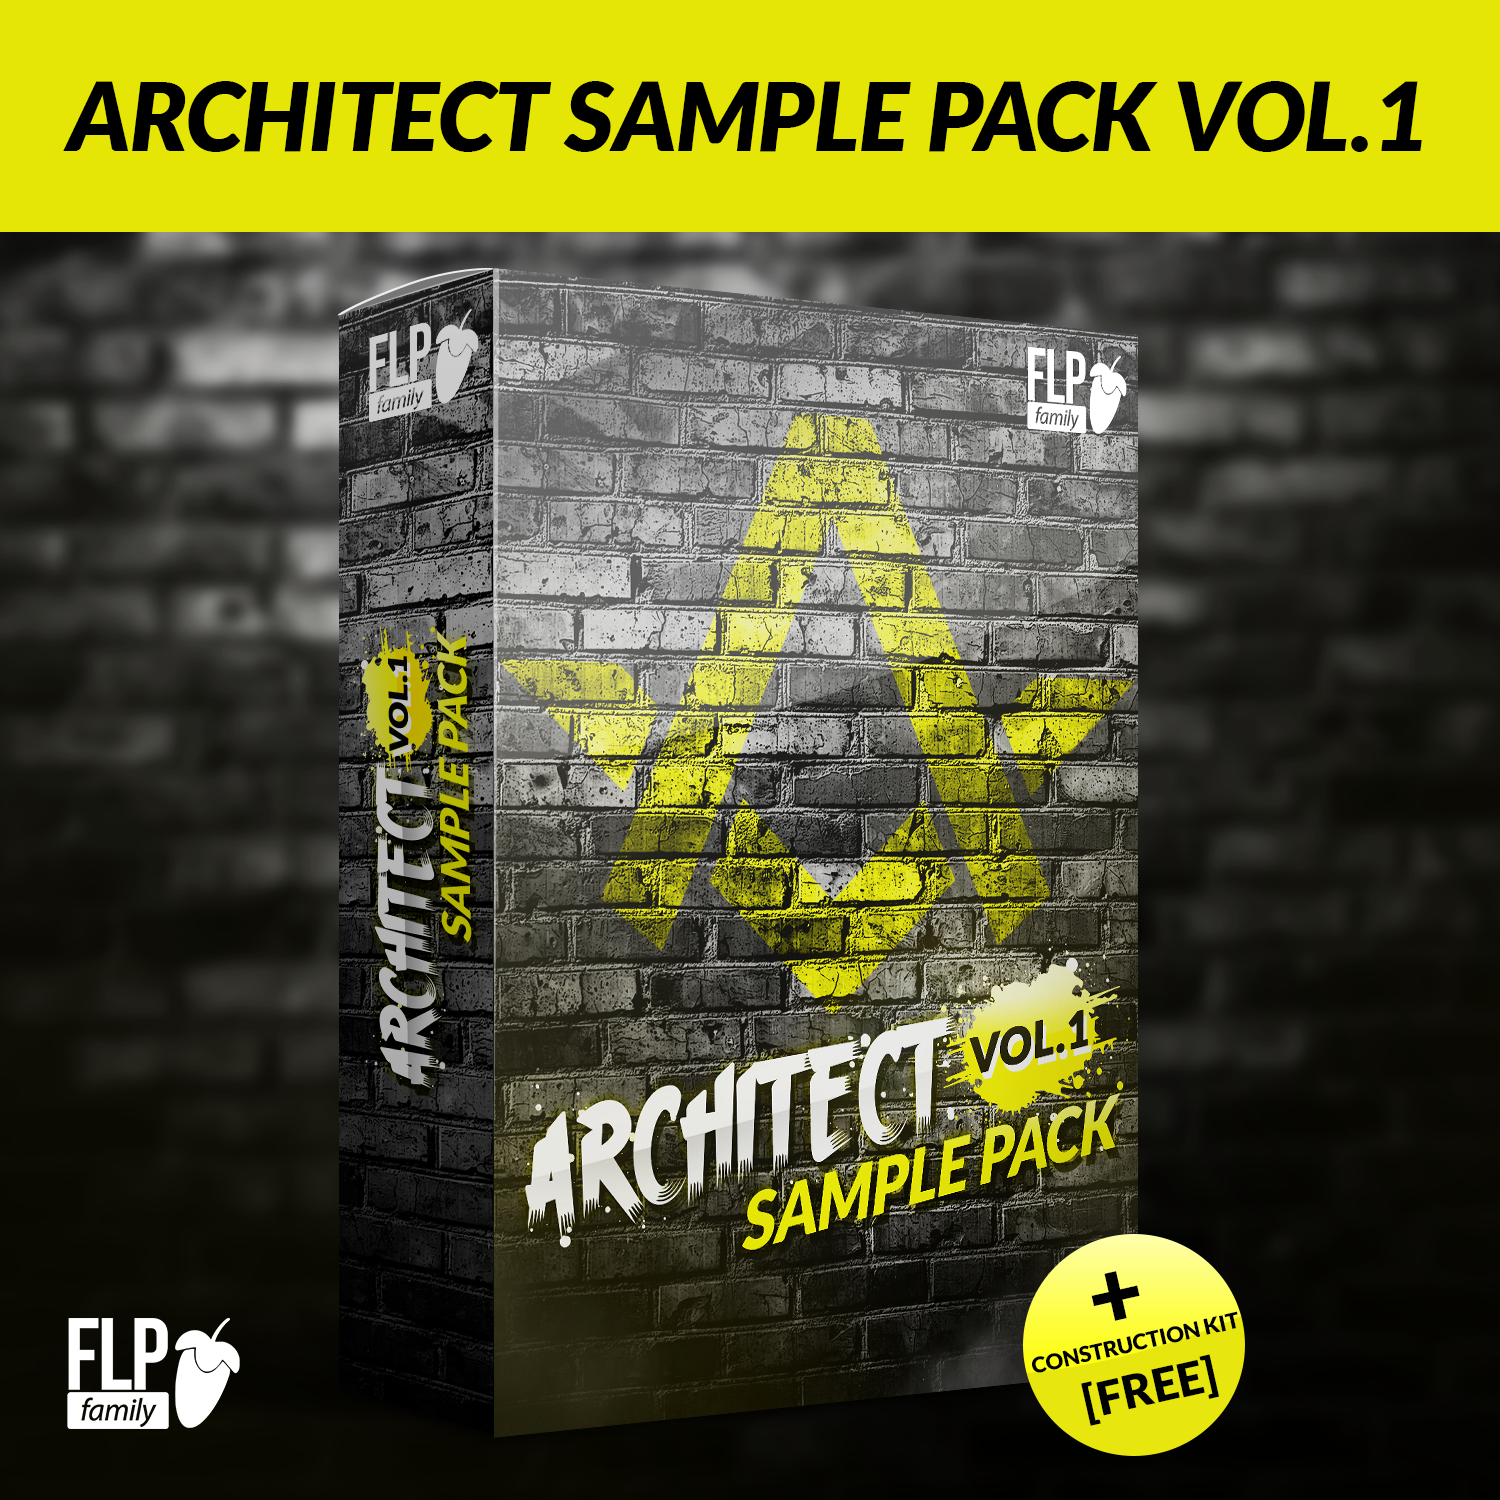 Architect's Sample Pack Vol. 1 + Construction Kit [FREE]